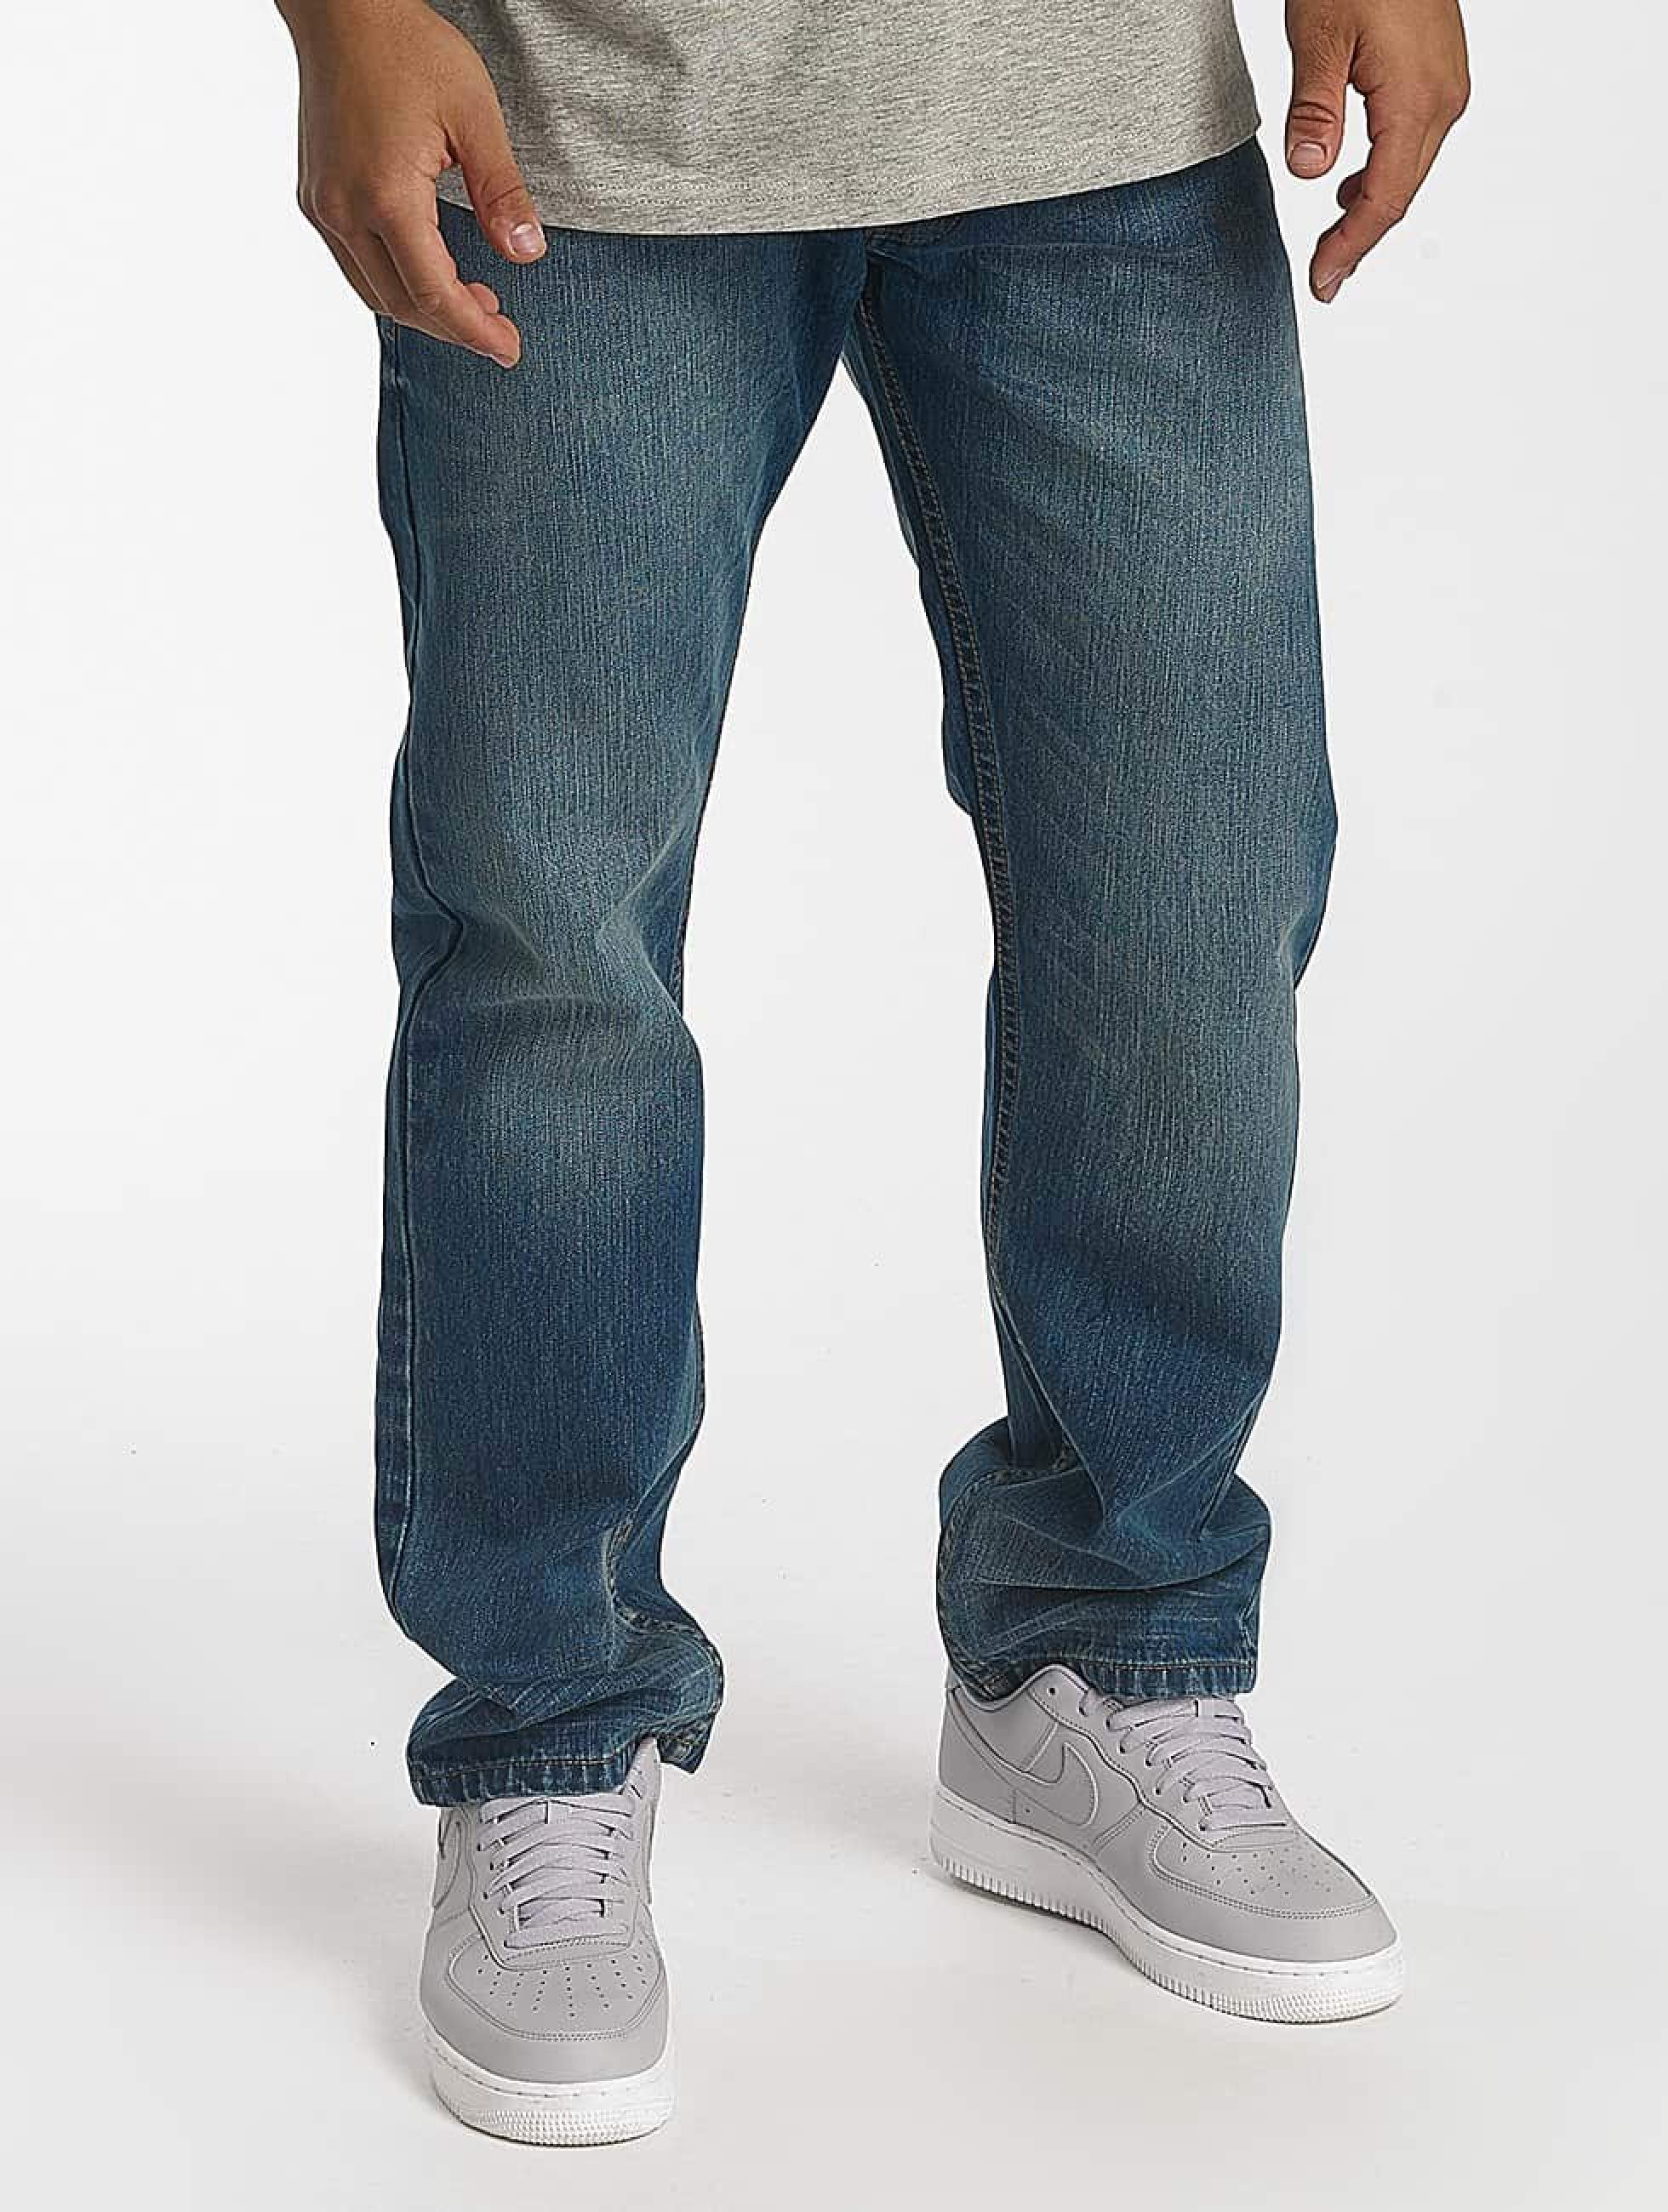 Rocawear / Straight Fit Jeans Tony Fit in blue W 38 L 34